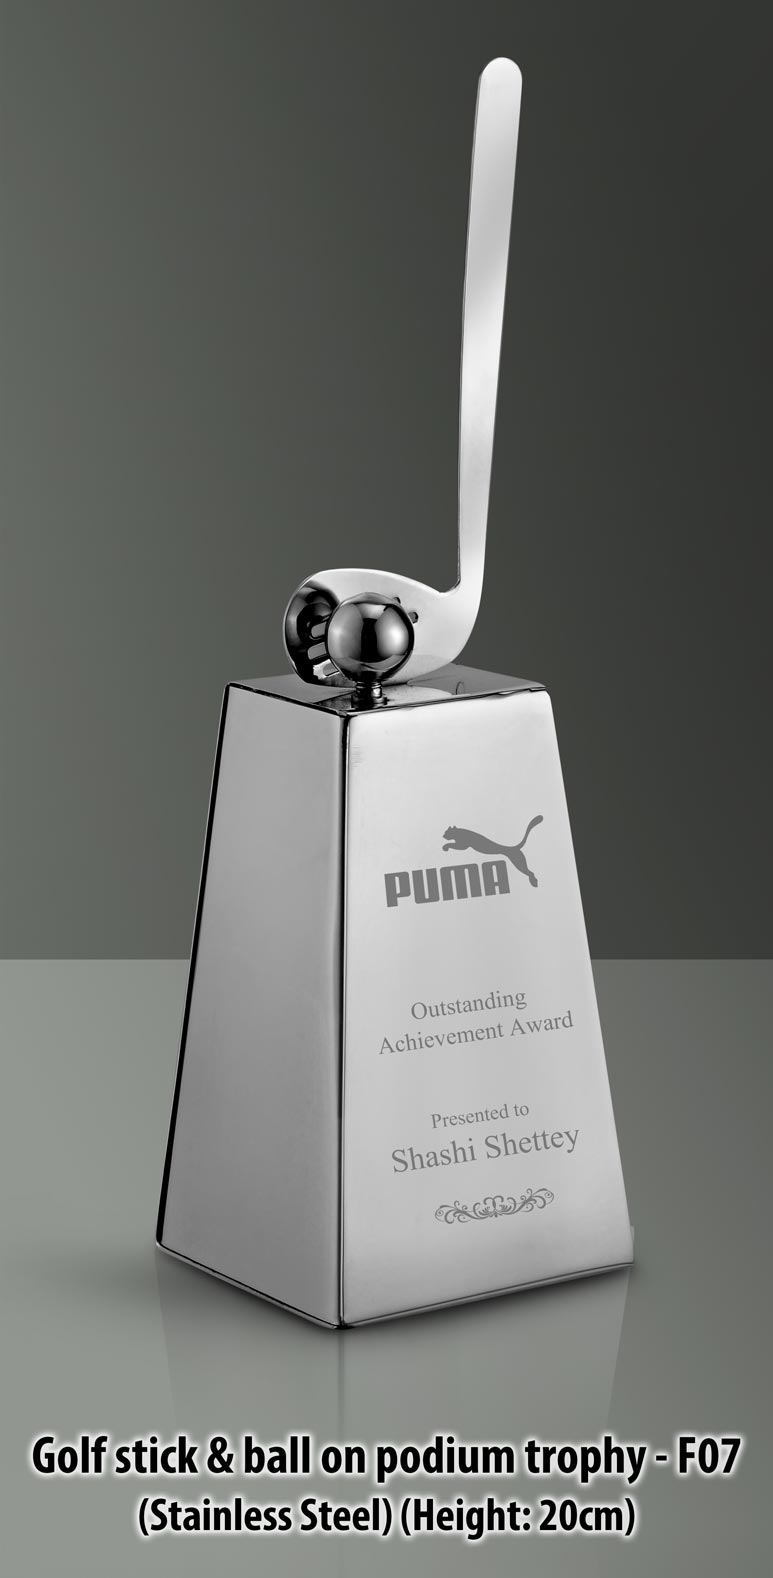 Promotional golf stick trophies